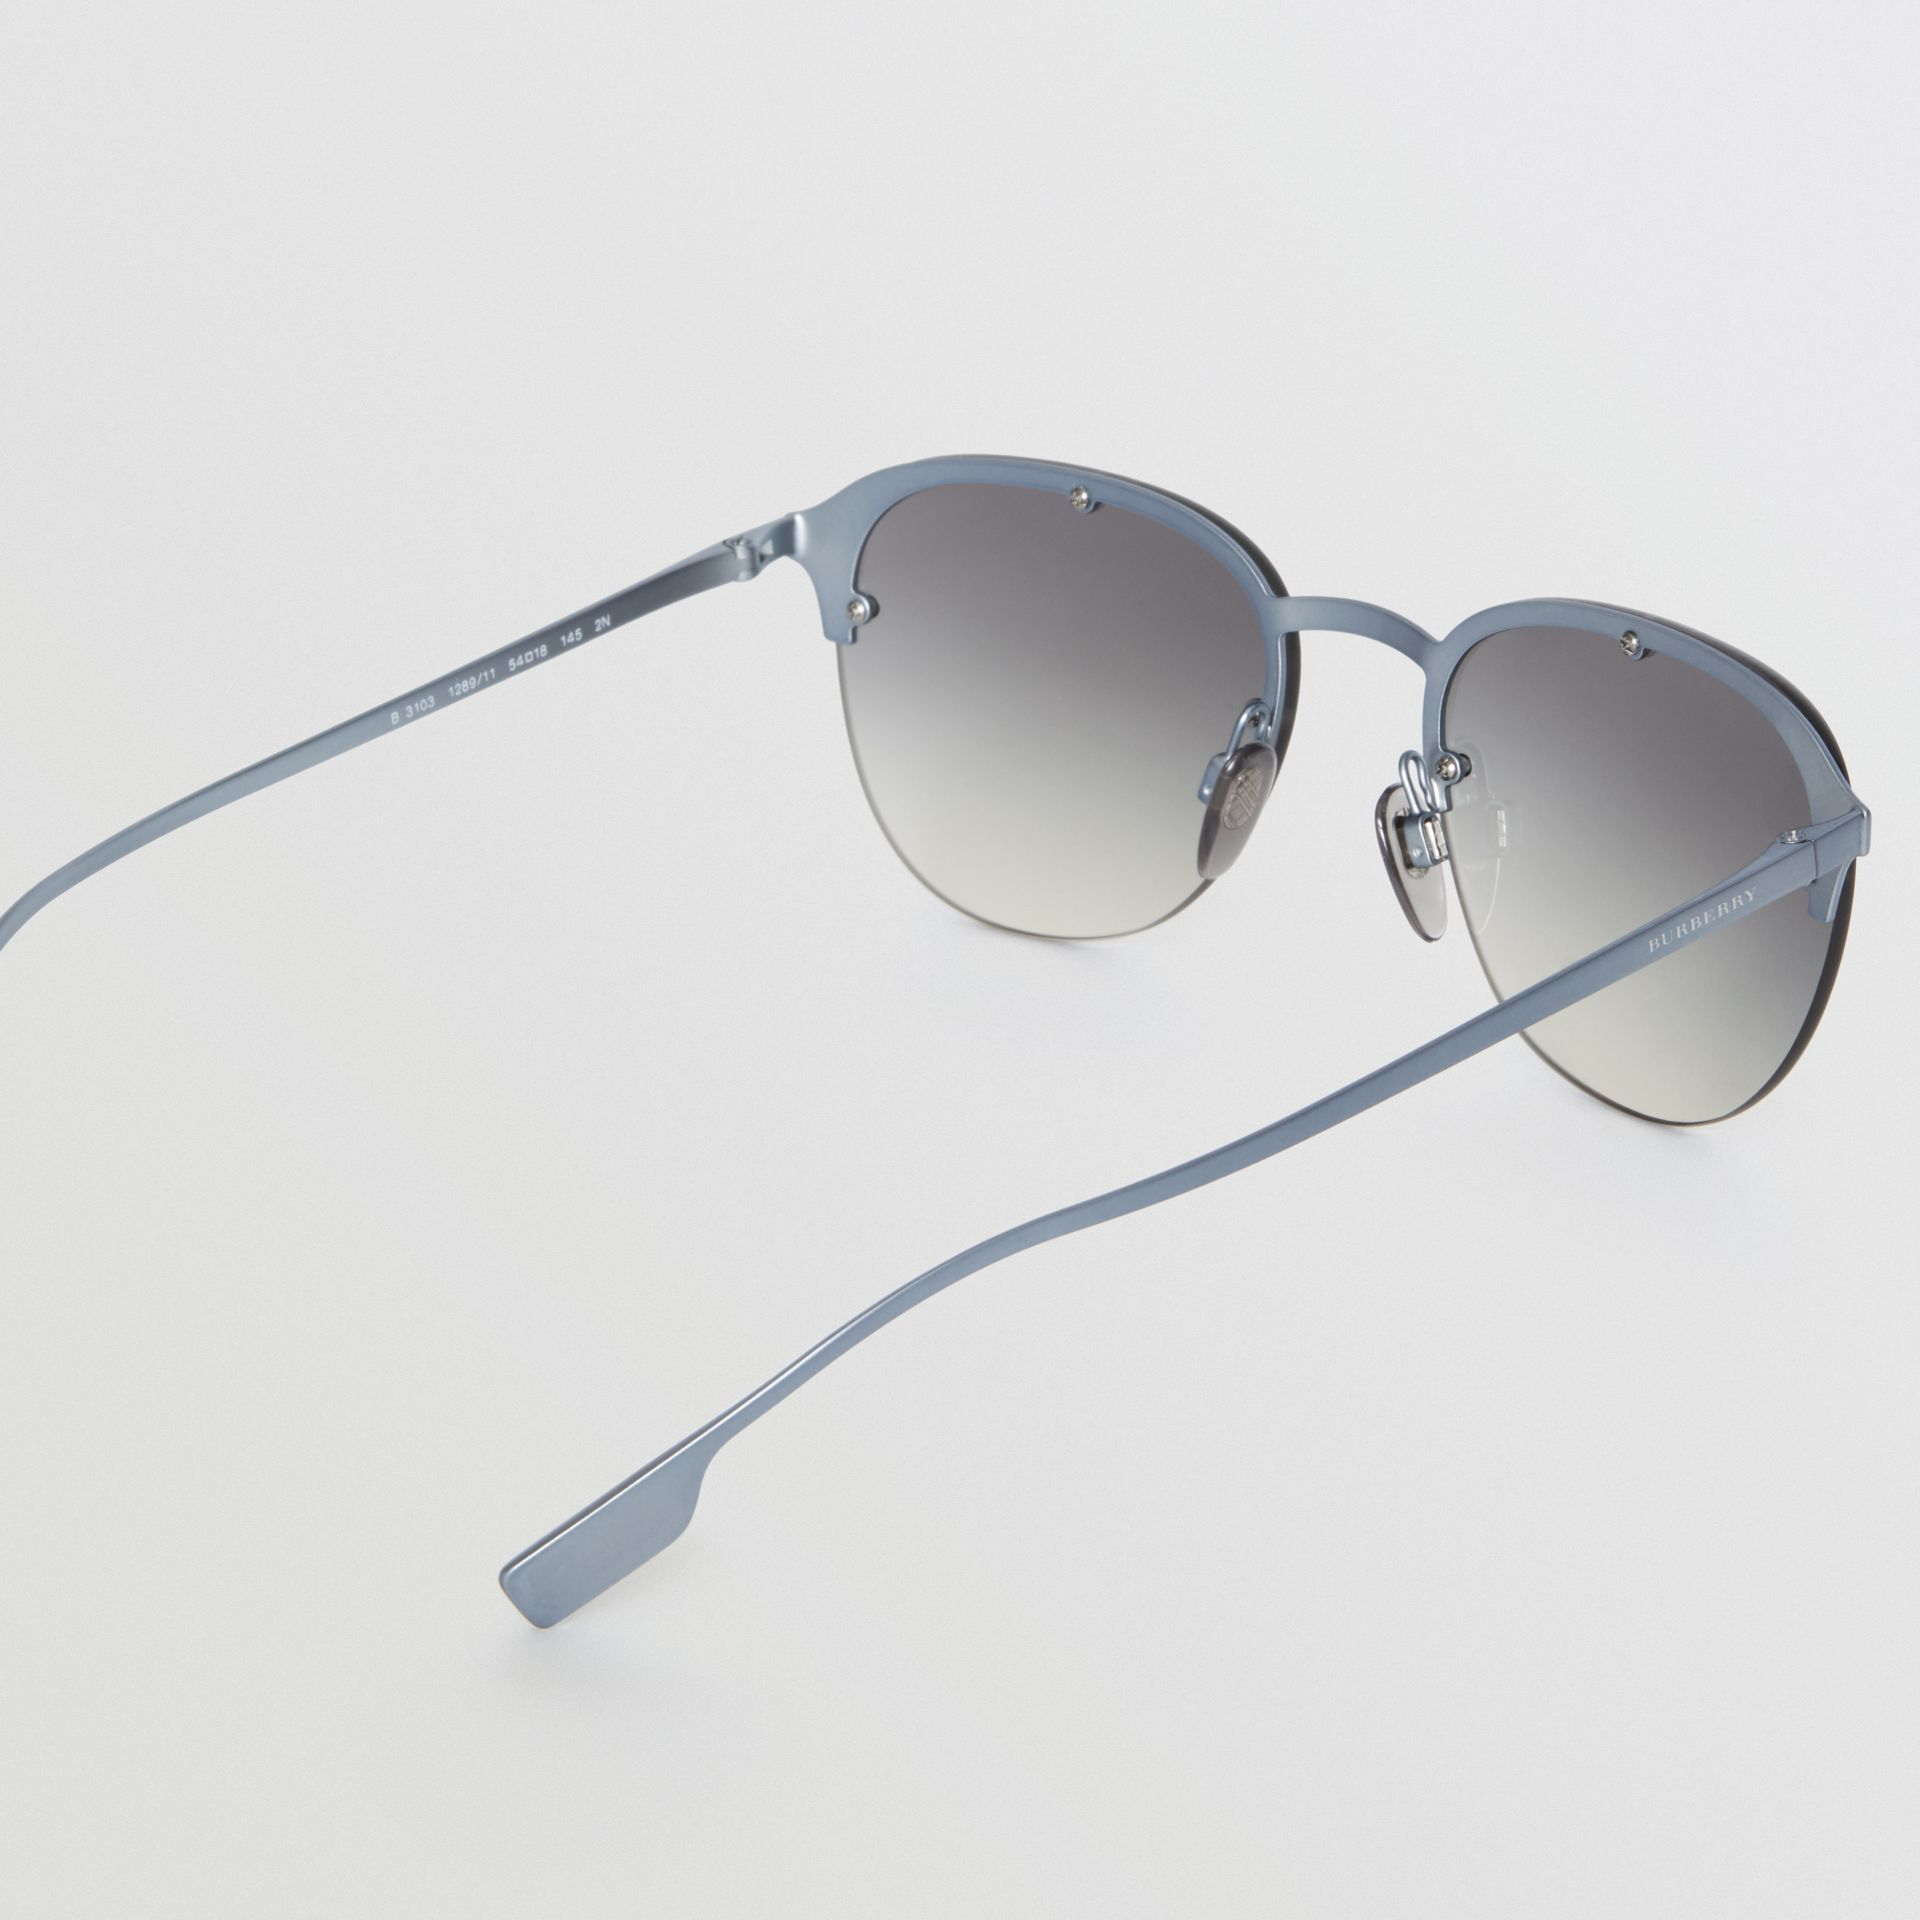 Round Frame Sunglasses in Grey - Men | Burberry - gallery image 4